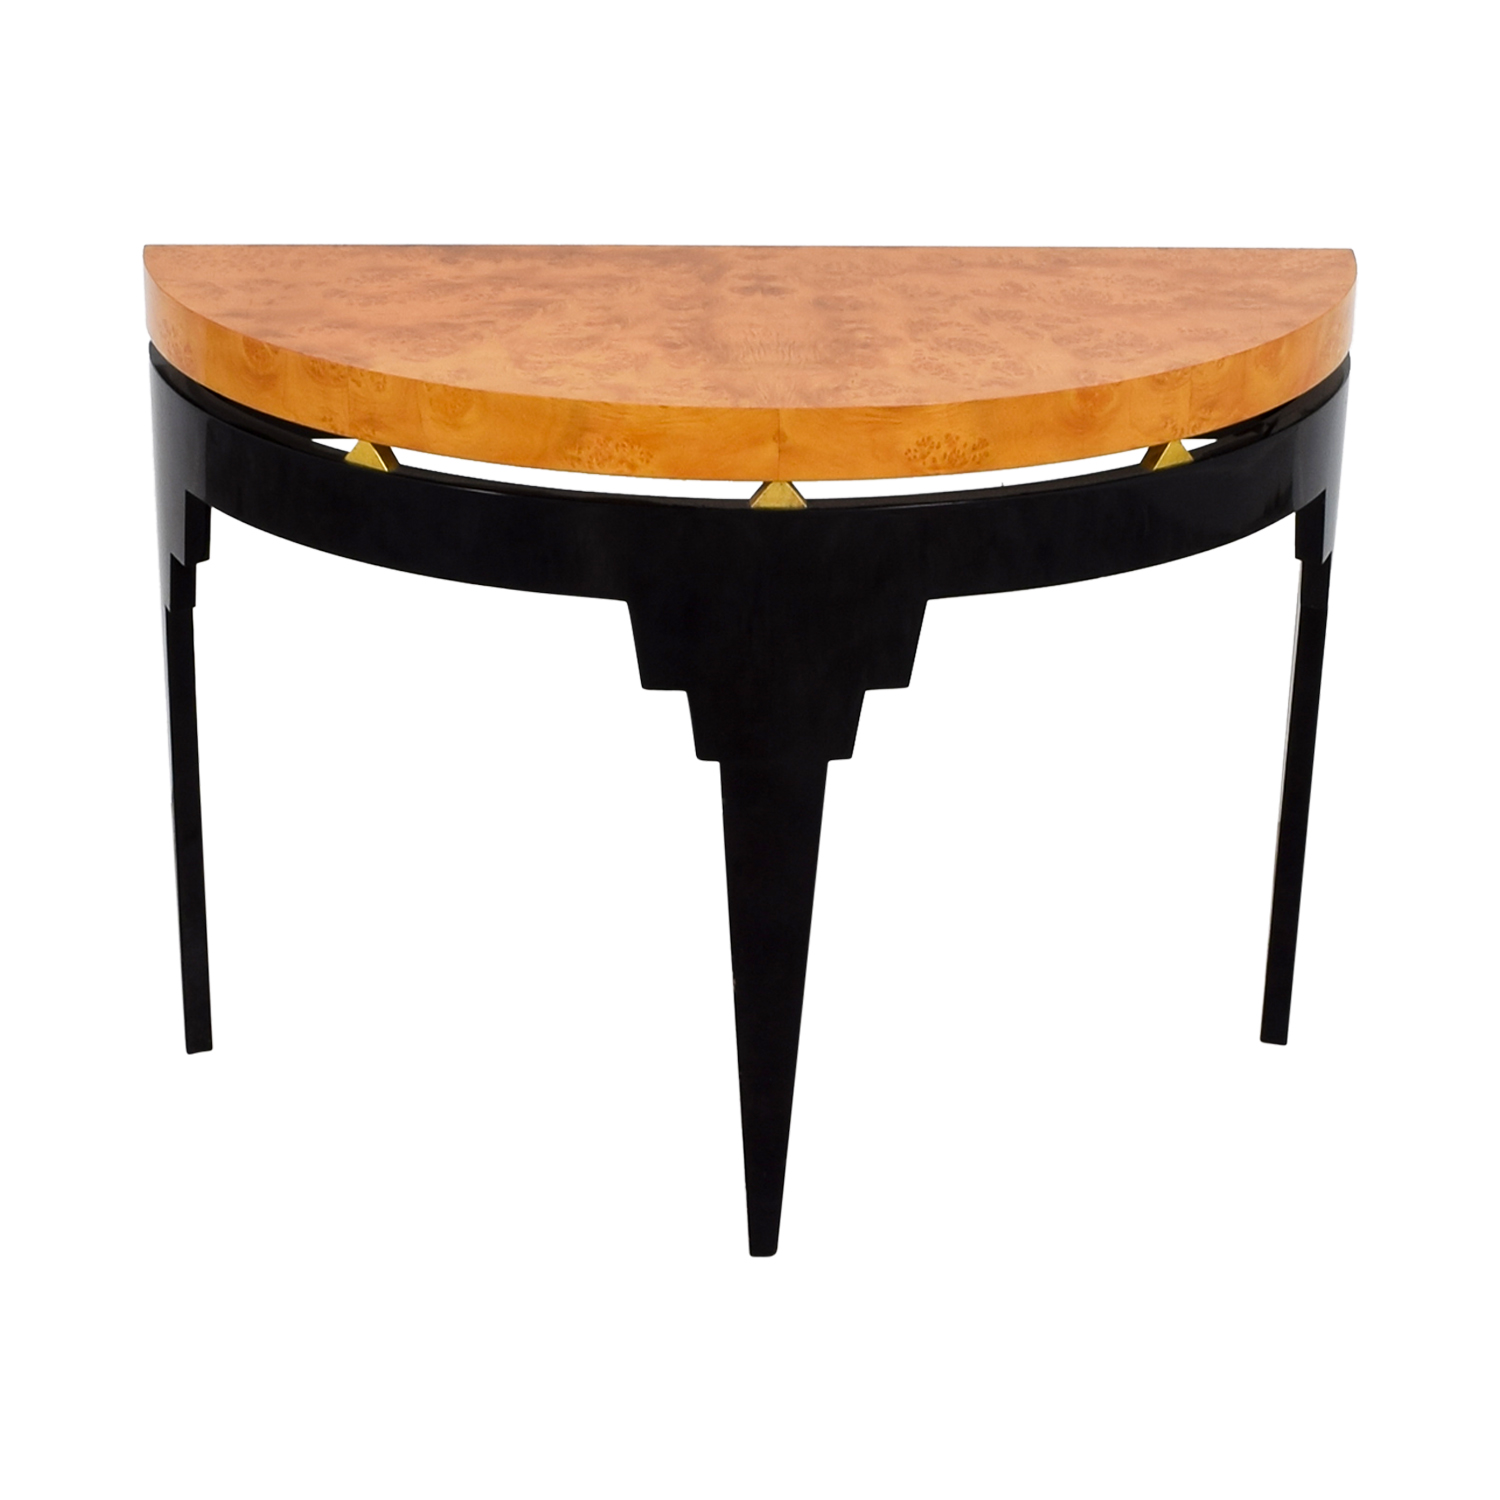 Furniture Masters Furniture Masters Art Deco Two Tone Accent Table nyc